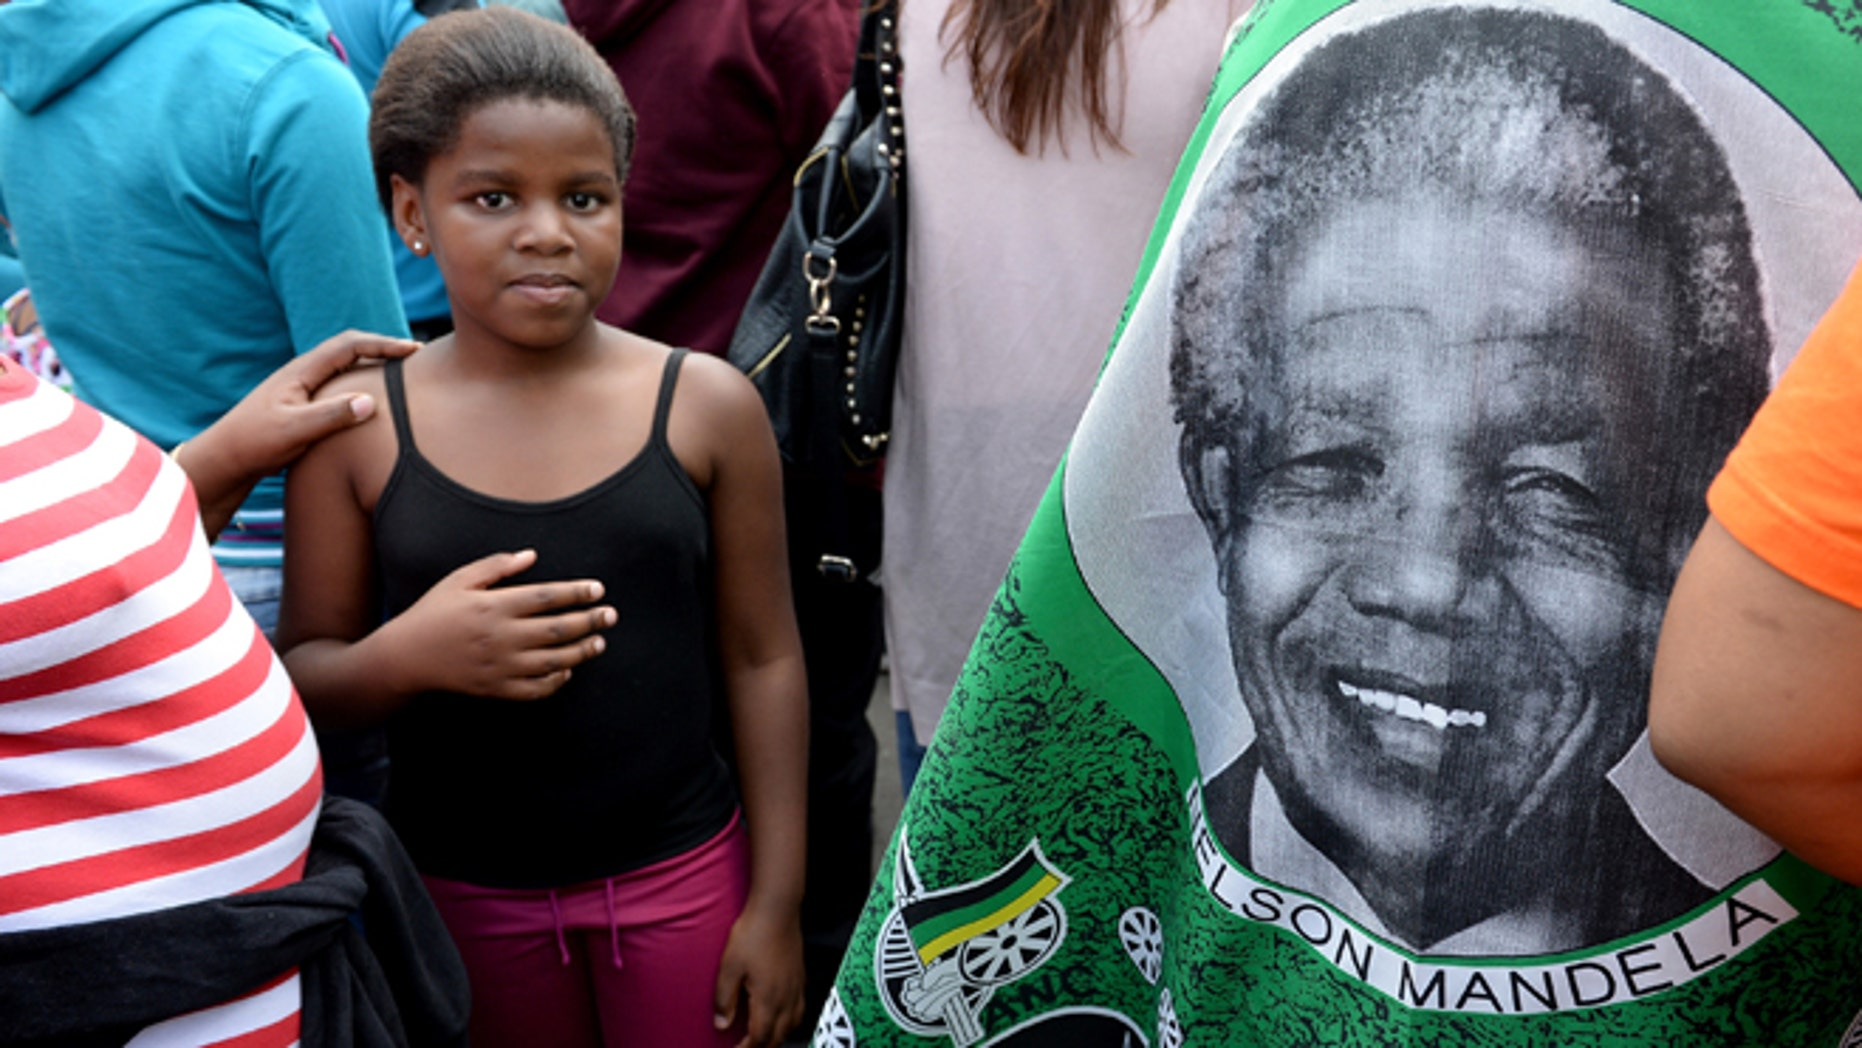 JOHANNESBURG, SOUTH AFRICA - DECEMBER 07:  South Africans gather to pay respect and tribute to former President Nelson Mandela outside his Houghton home on December 7, 2013 in Johannesburg, South Africa. Crowds gather at his home as vigils continue across South Africa as thousands mourn the death of former leader Nelson Mandela. Mr Mandela, died on Thursday aged 95, spent 27 years in jail before becoming South Africa's first black president in 1994..  (Photo by Jeff J Mitchell/Getty Images)